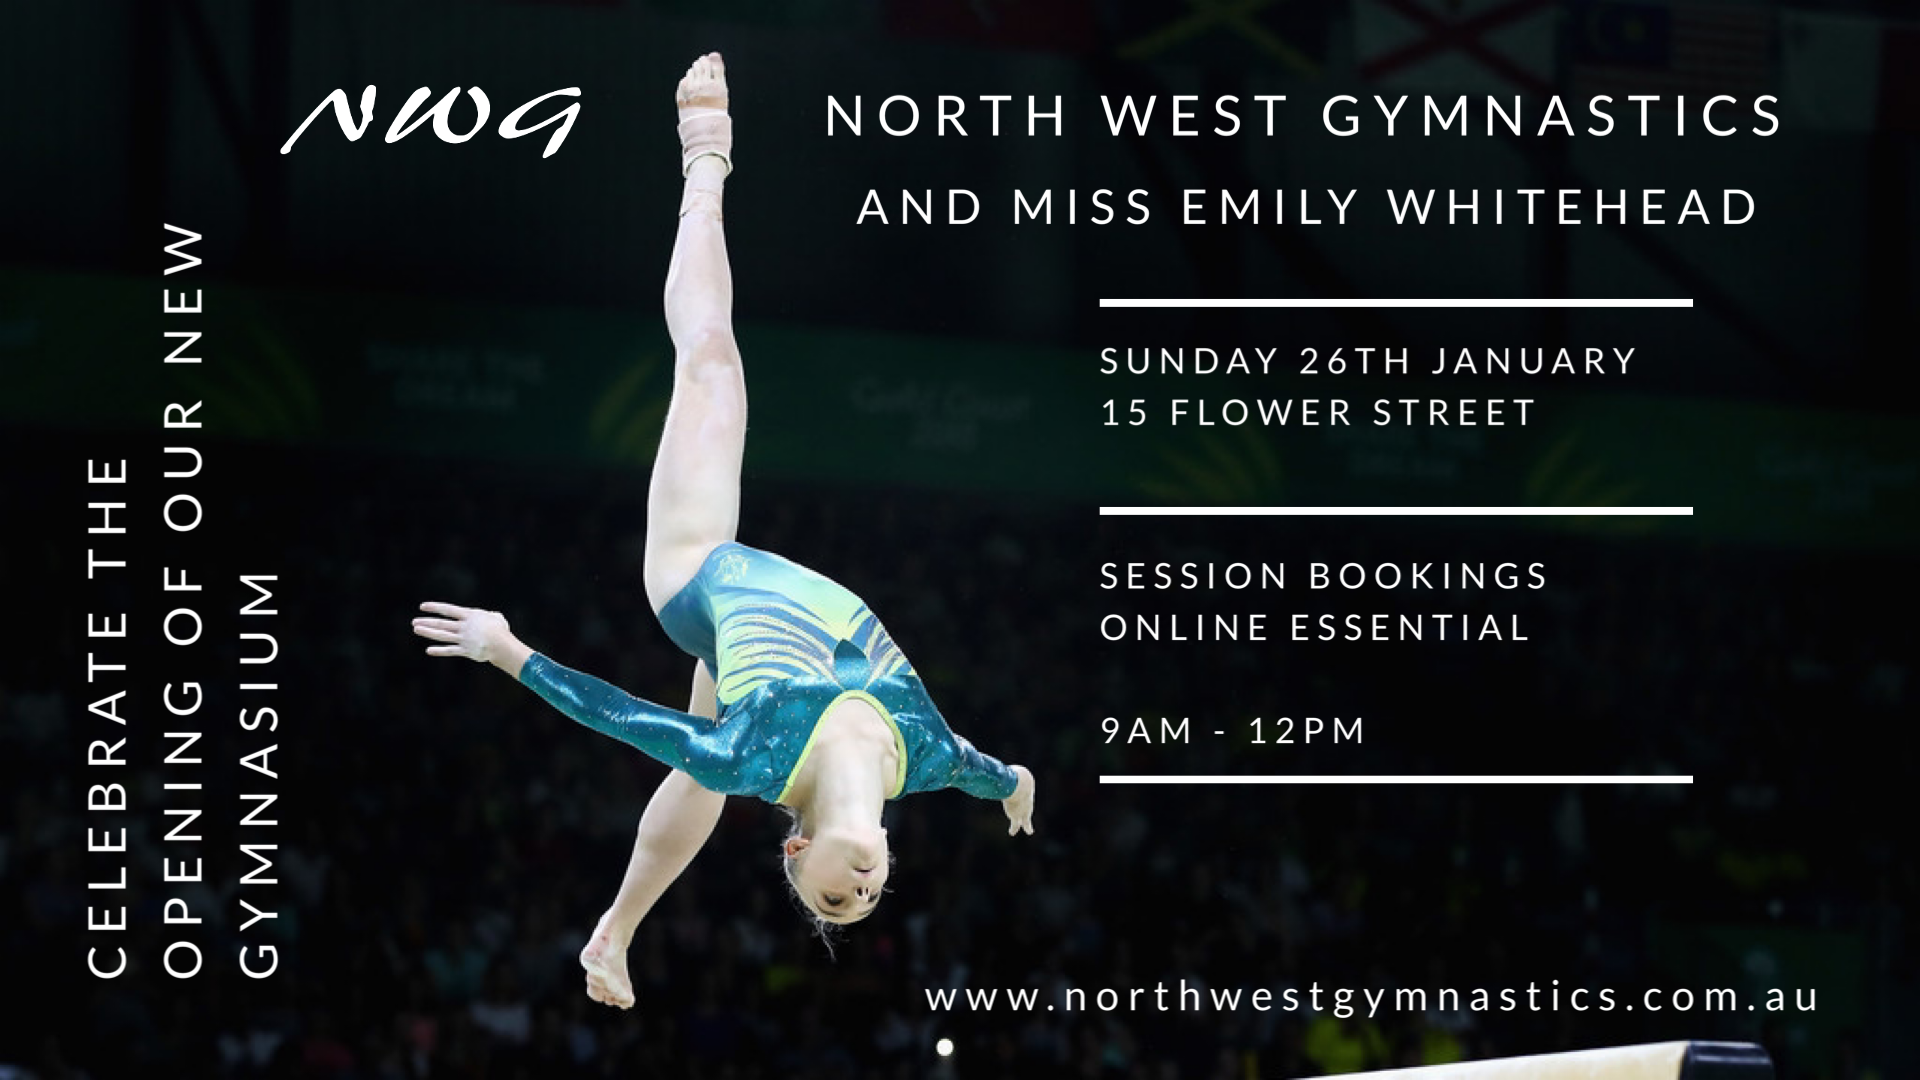 NWG North West Gymnastics Emily Whitehead Gymnasium Opening Event